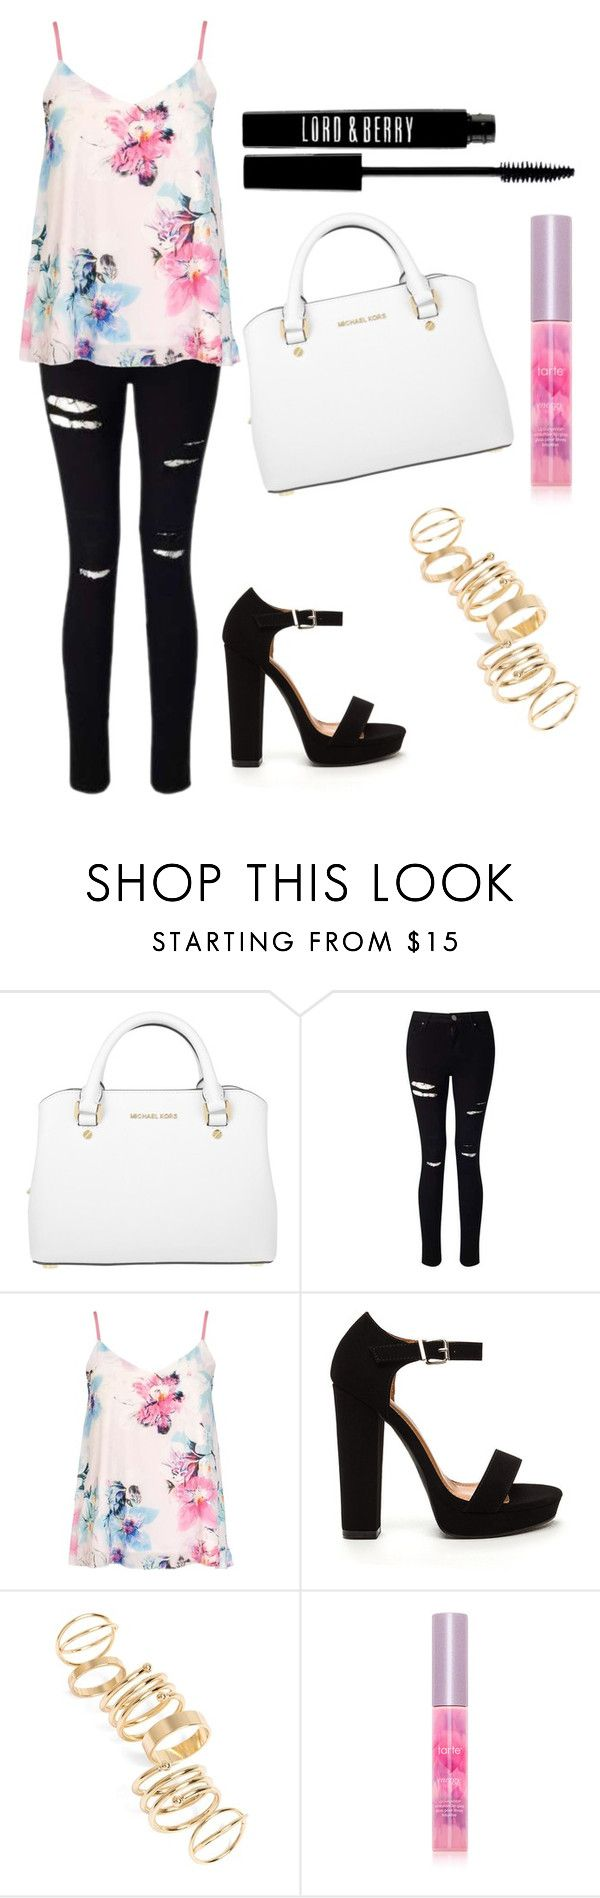 """""""Cute"""" by electraz on Polyvore featuring Michael Kors, Miss Selfridge, Dorothy Perkins, BP., tarte and Lord & Berry"""